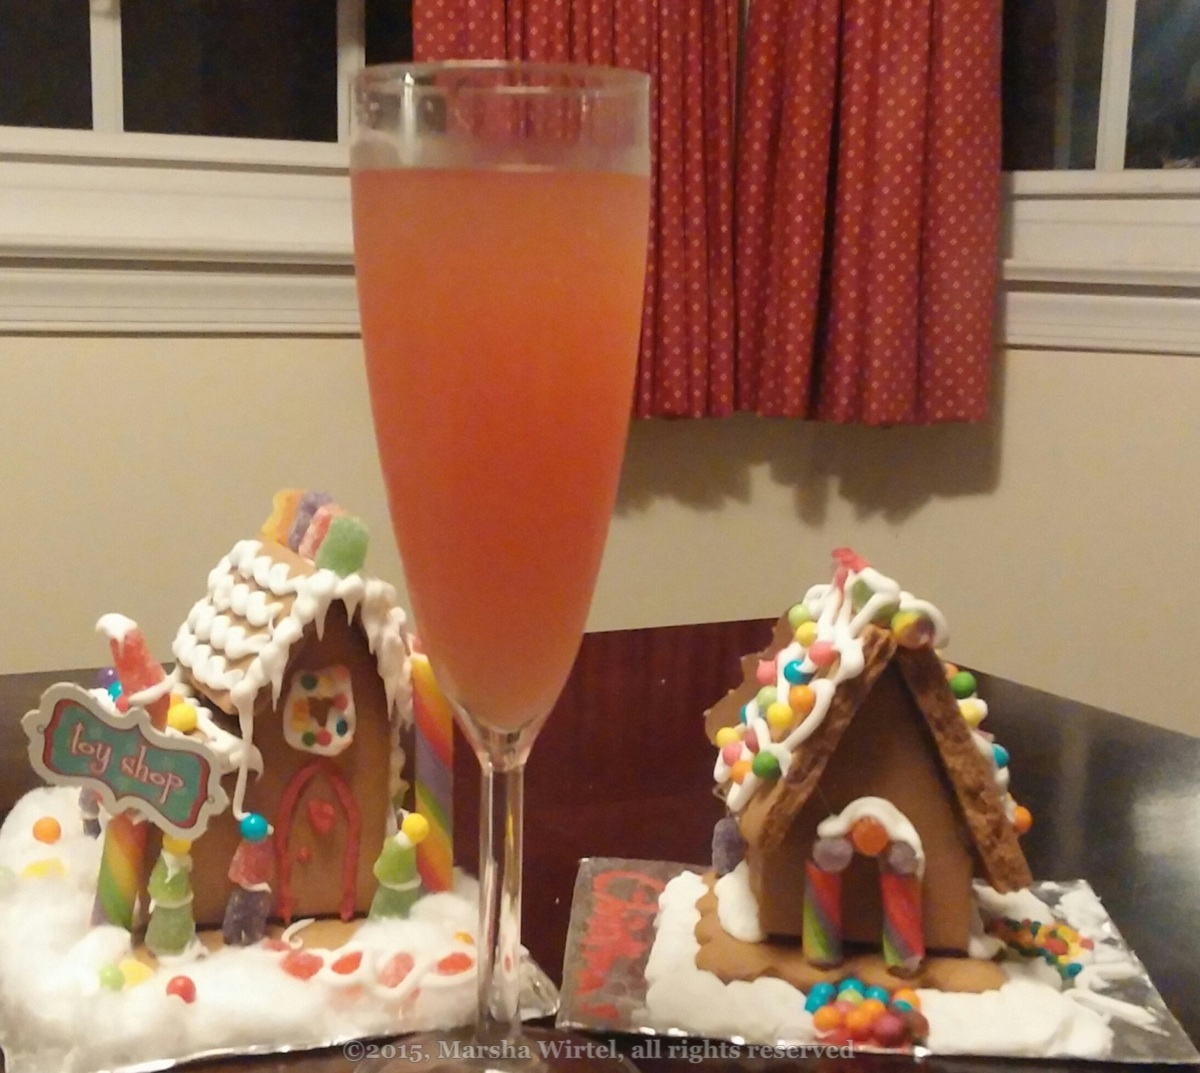 [Red lion cocktail in a champagn flute next to two of the cutest gingerbread houses; copyright 2015, Marsha Wirtel, all rights reserved]